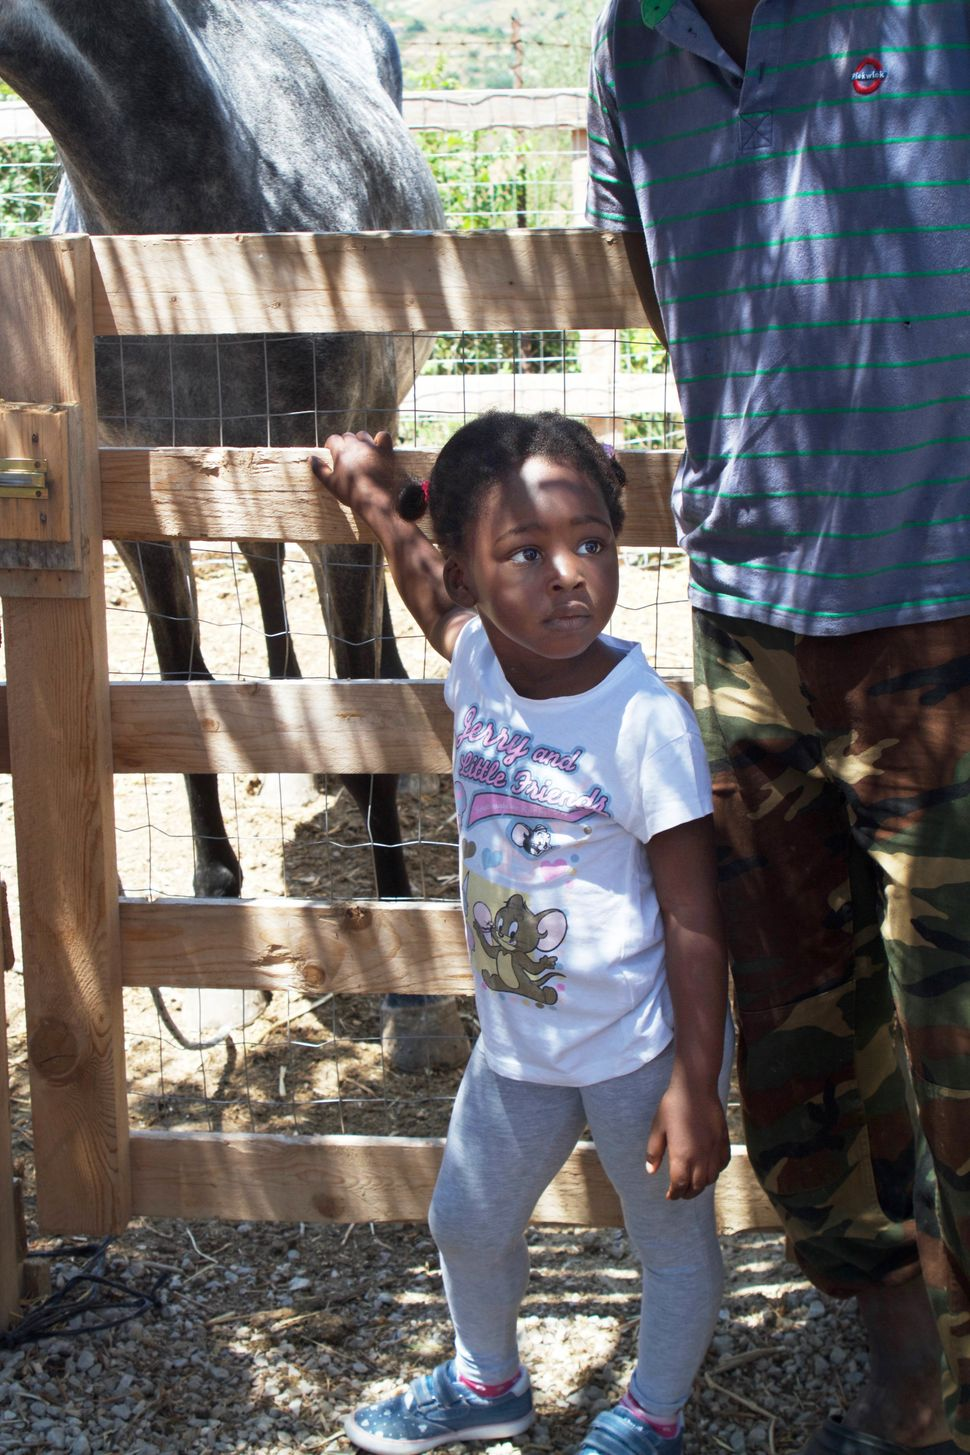 Prospery Sesay, 3, hangs out on the farm while her dad sells produce he picked in the Palermo market.